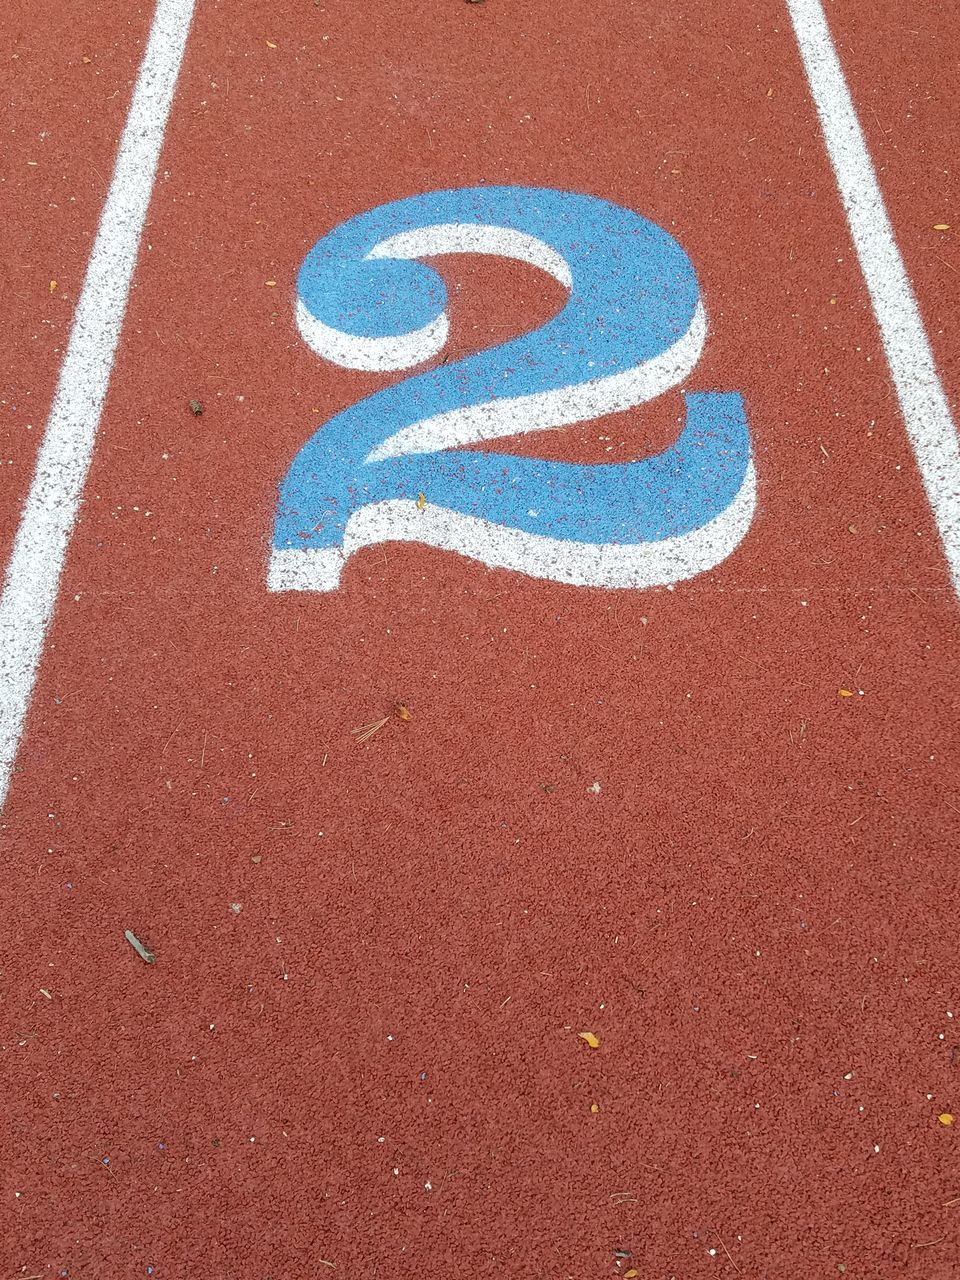 Numbered lane on running track